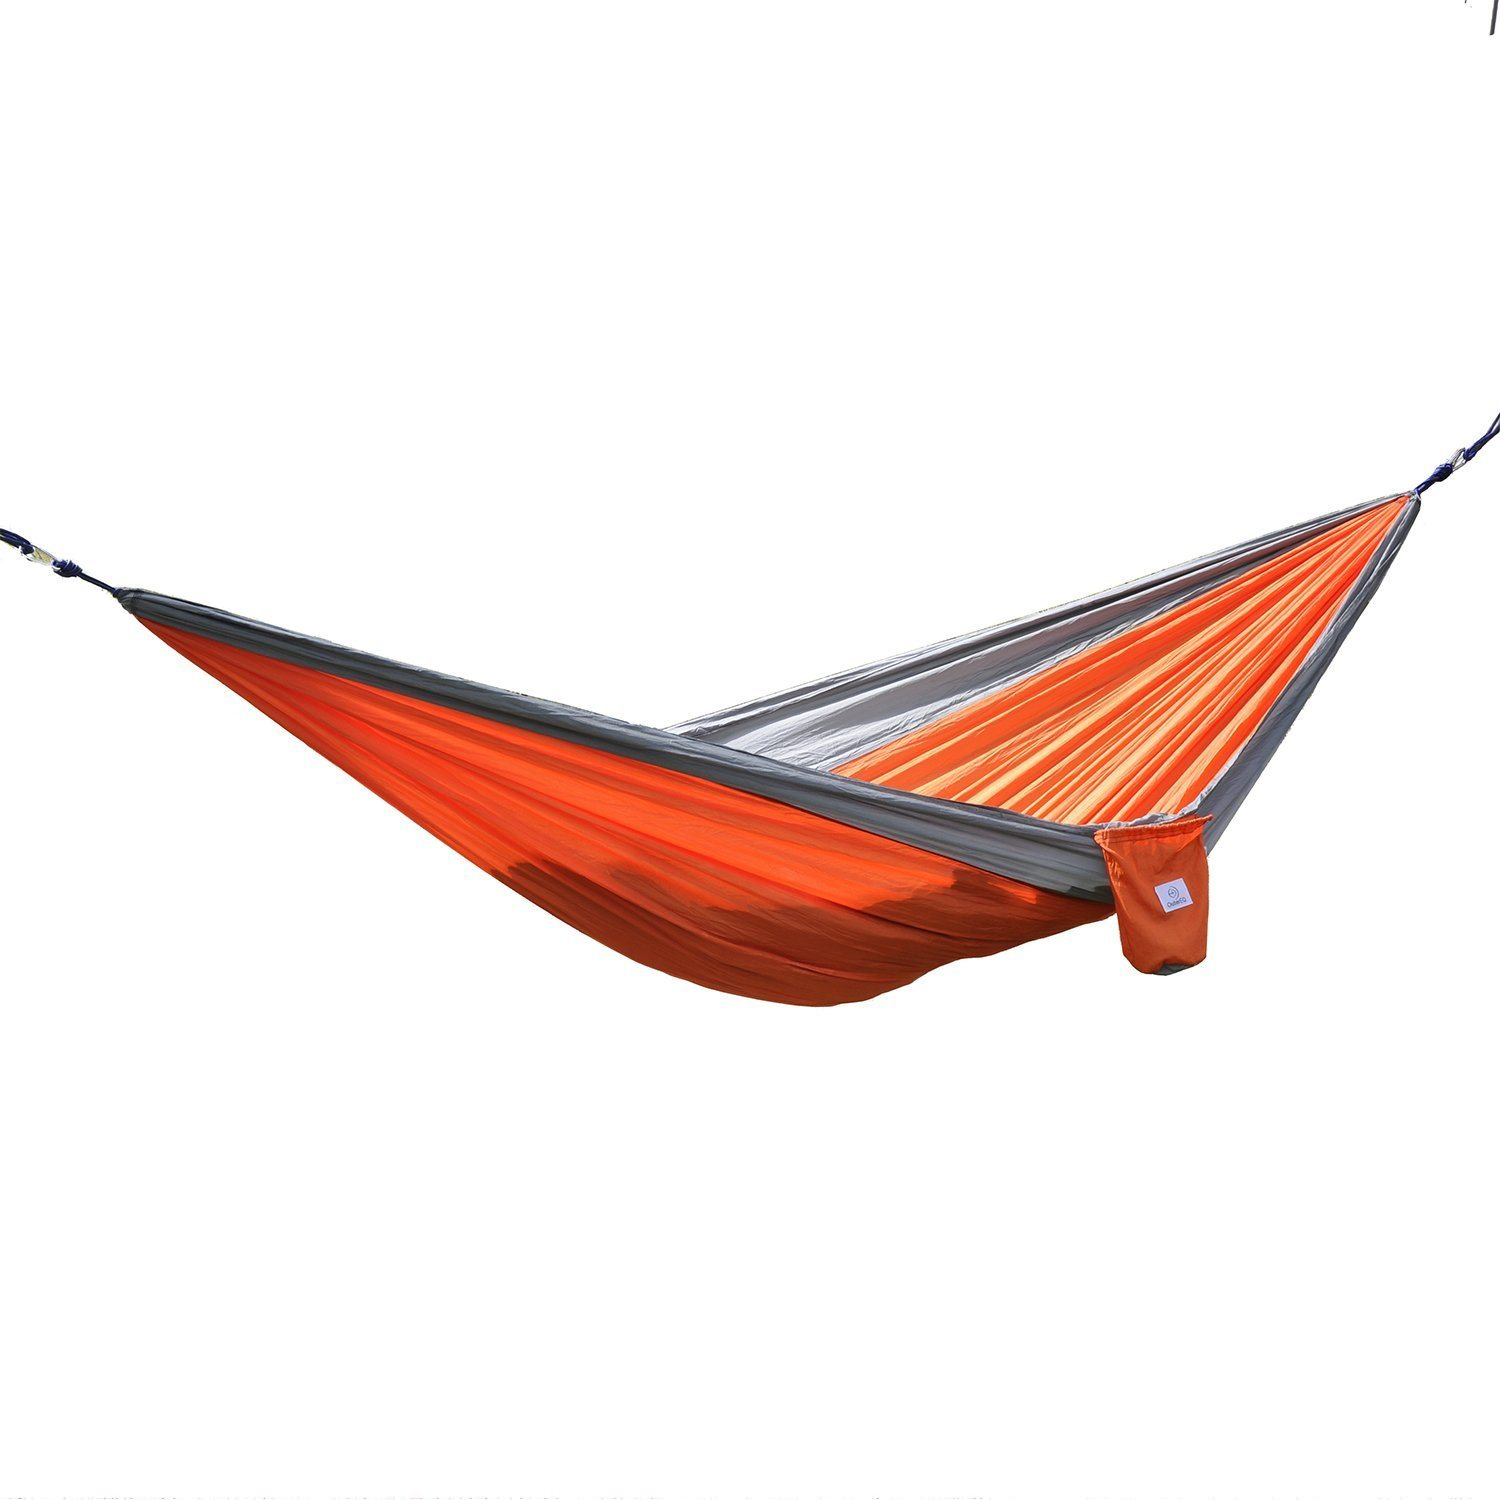 Camping Hammock - Best Quality Gear for Backpacking Survival or Travel - Portable Lightweight Parachute Nylon.